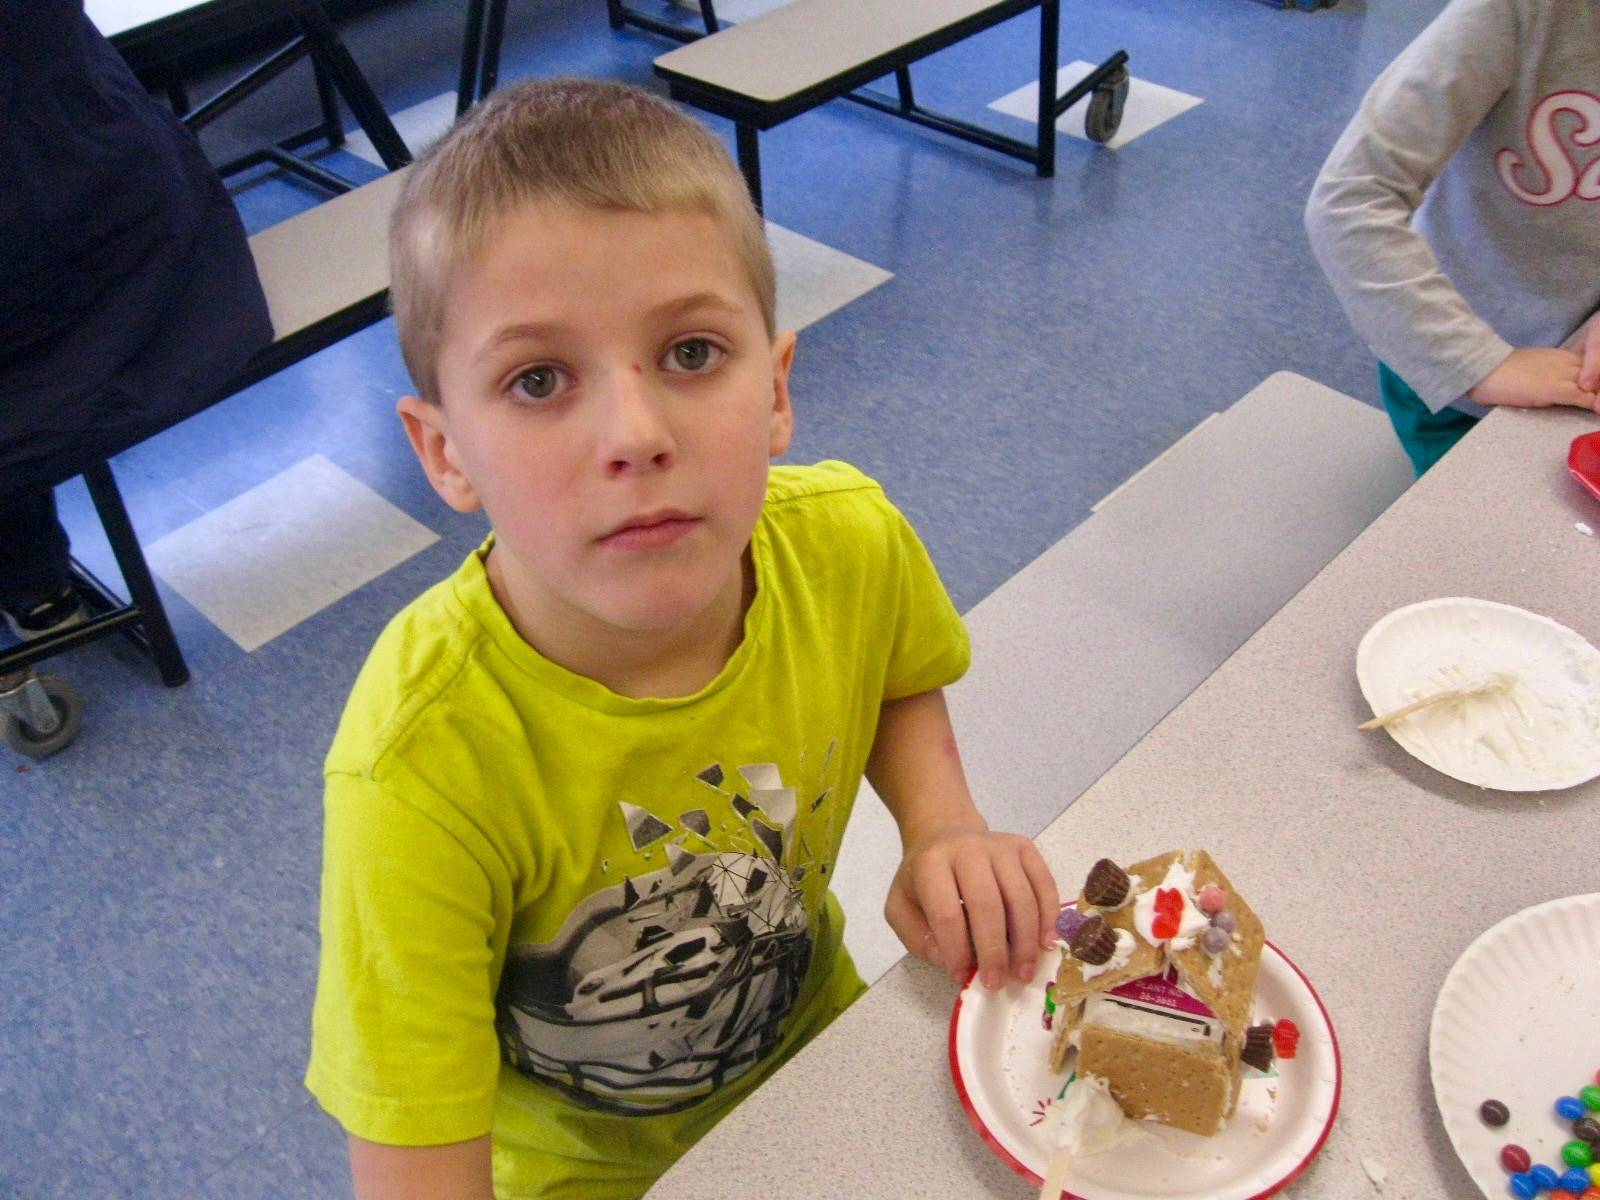 A student is proud of his gingerbread house.